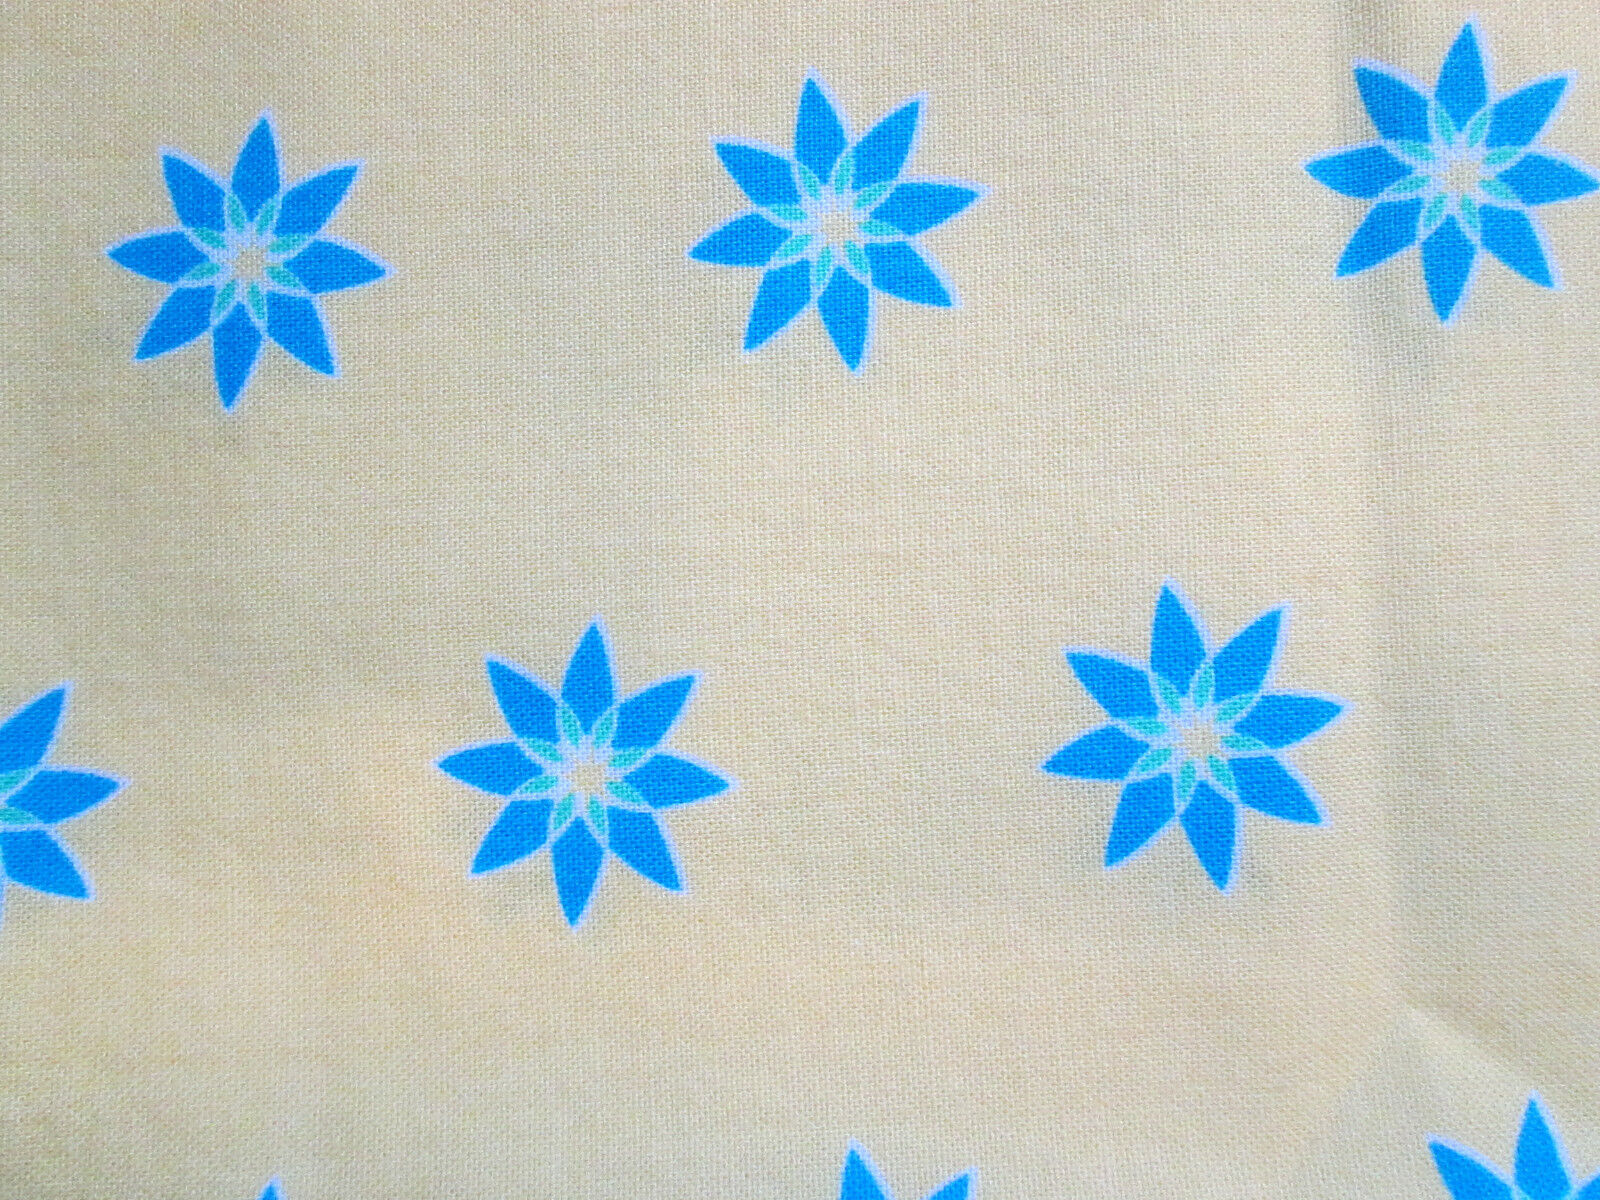 19x21 Scrap Fabric In Bright Lemon Yellow With Teal/blue Flowers. Pre-washed. - $1.75